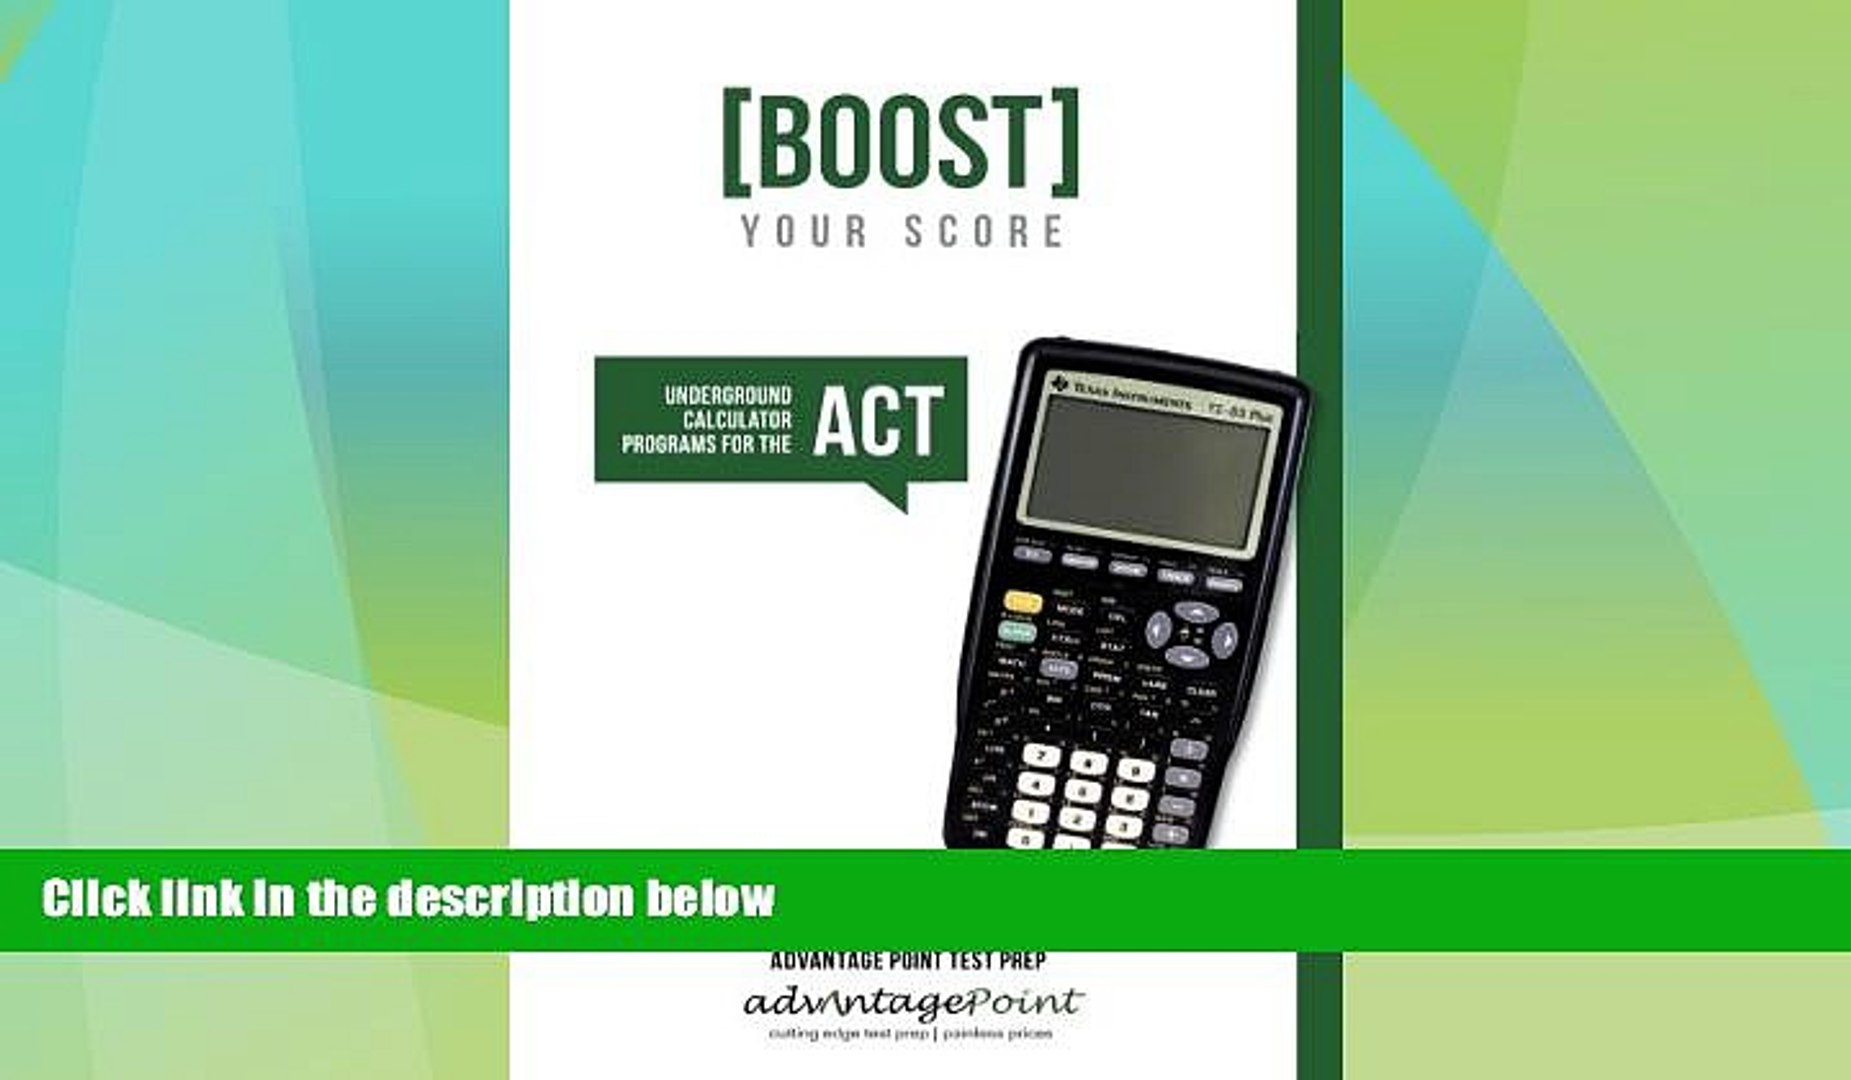 Download Advantage Point Boost Your Score: Underground Calculator Programs  for the ACT Test For Ipad